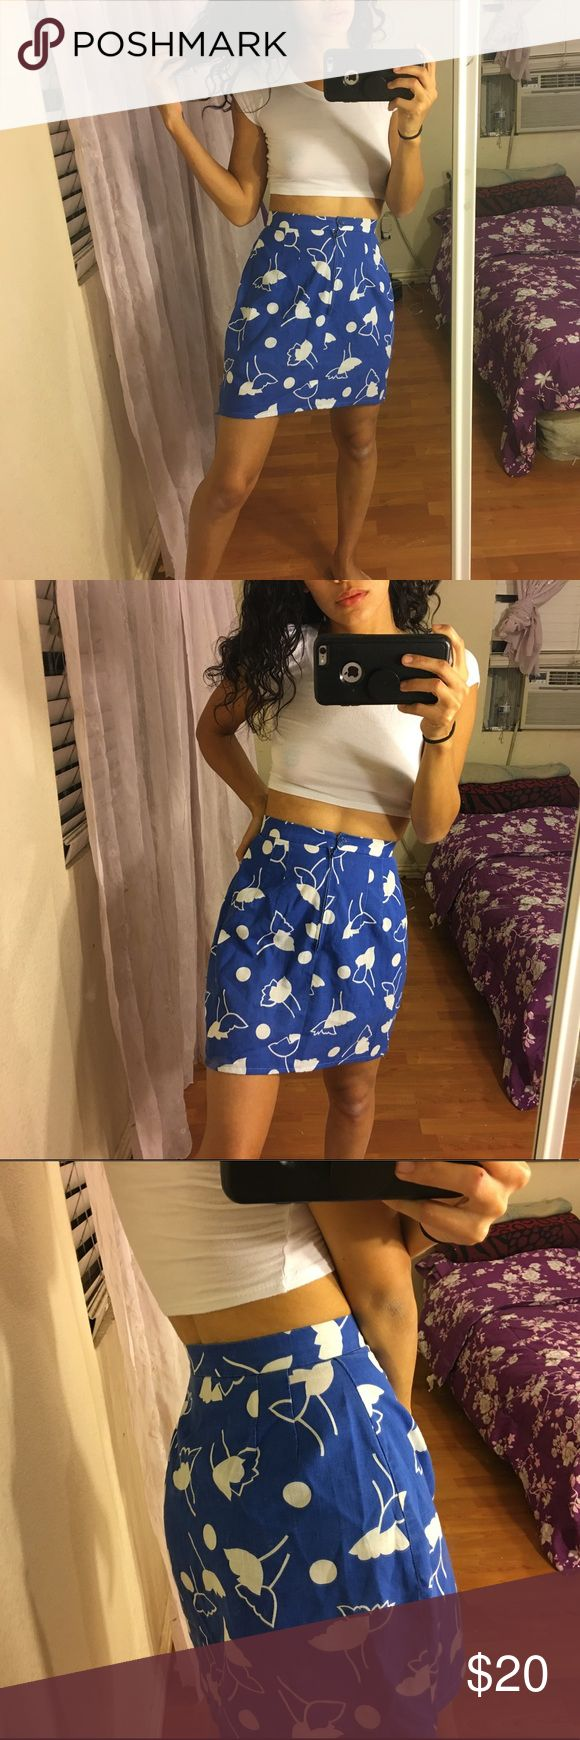 Handmade Blue and White Patterned Skirt high waisted, and so perfect for spring and summer, no tags, best fits XXS-XS approx., model is XS and fit on the waist but on an empty stomach 😫 lol, so I recommend for someone smaller than me. model is 24 in waist and fit just right.   waist: 12 in length: 16 in Skirts Mini